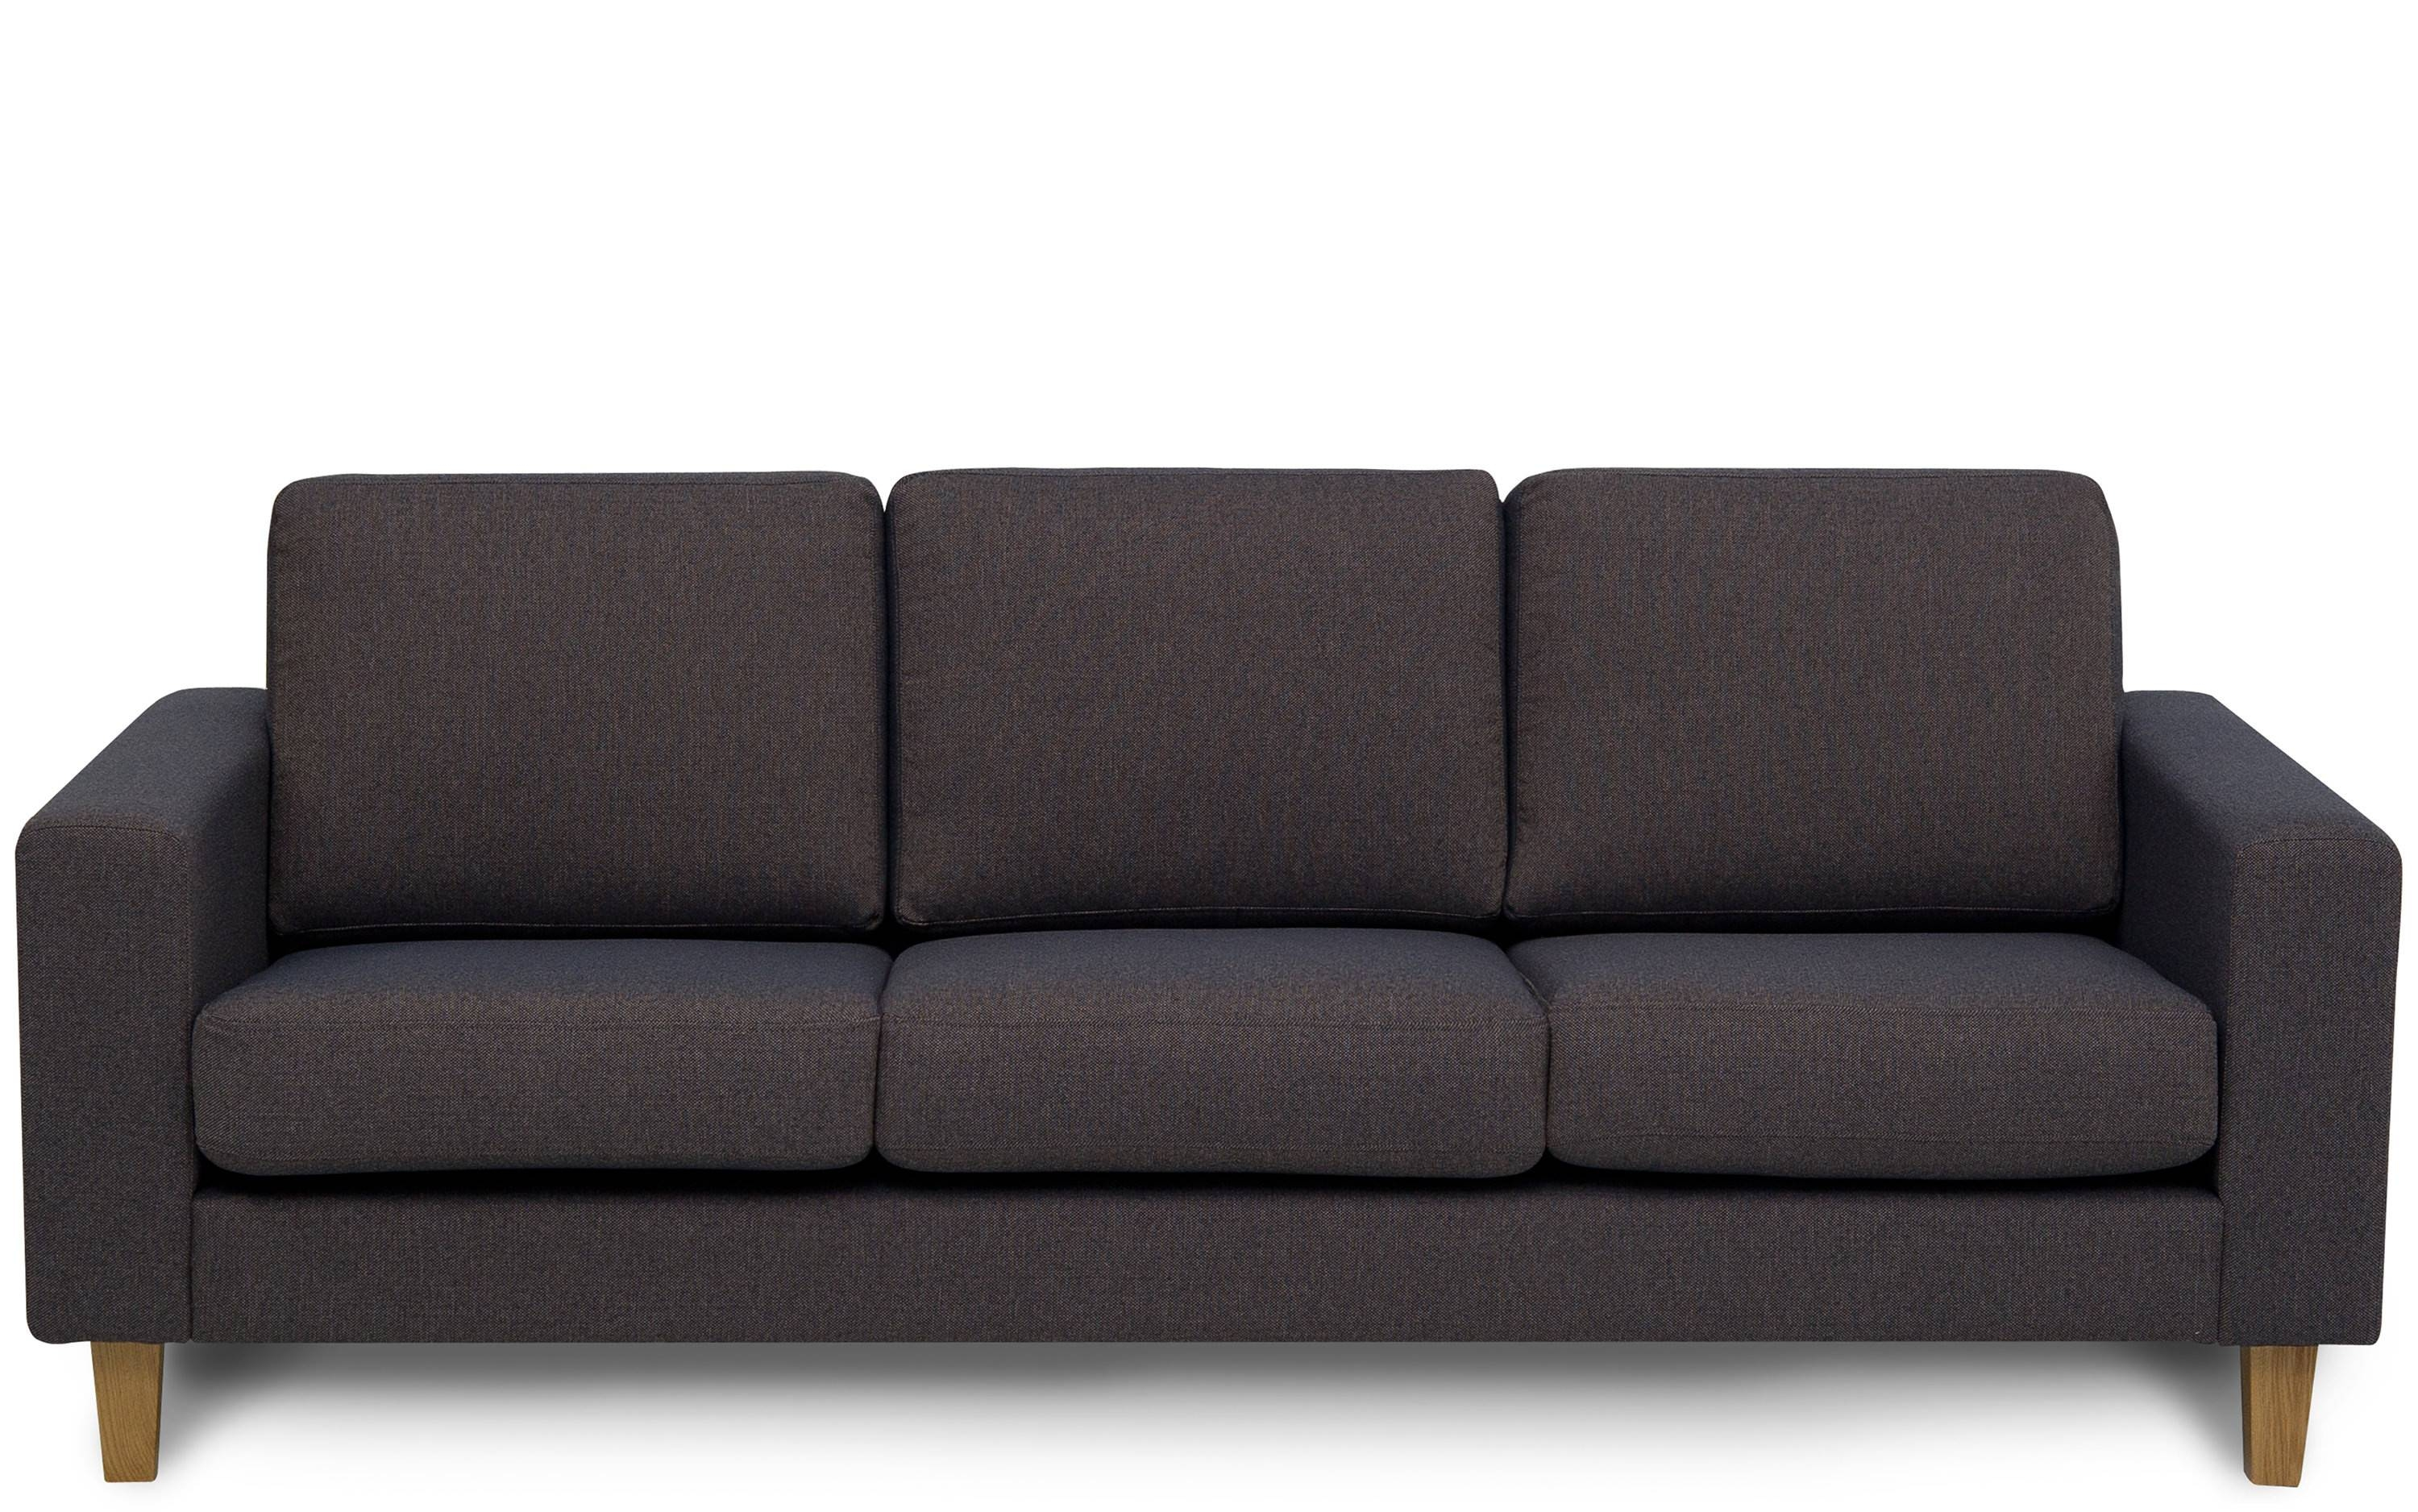 Dalton Three Seater Sofa | Designer Sofas | Buy At Kontenta intended for Three Seater Sofas (Image 14 of 30)